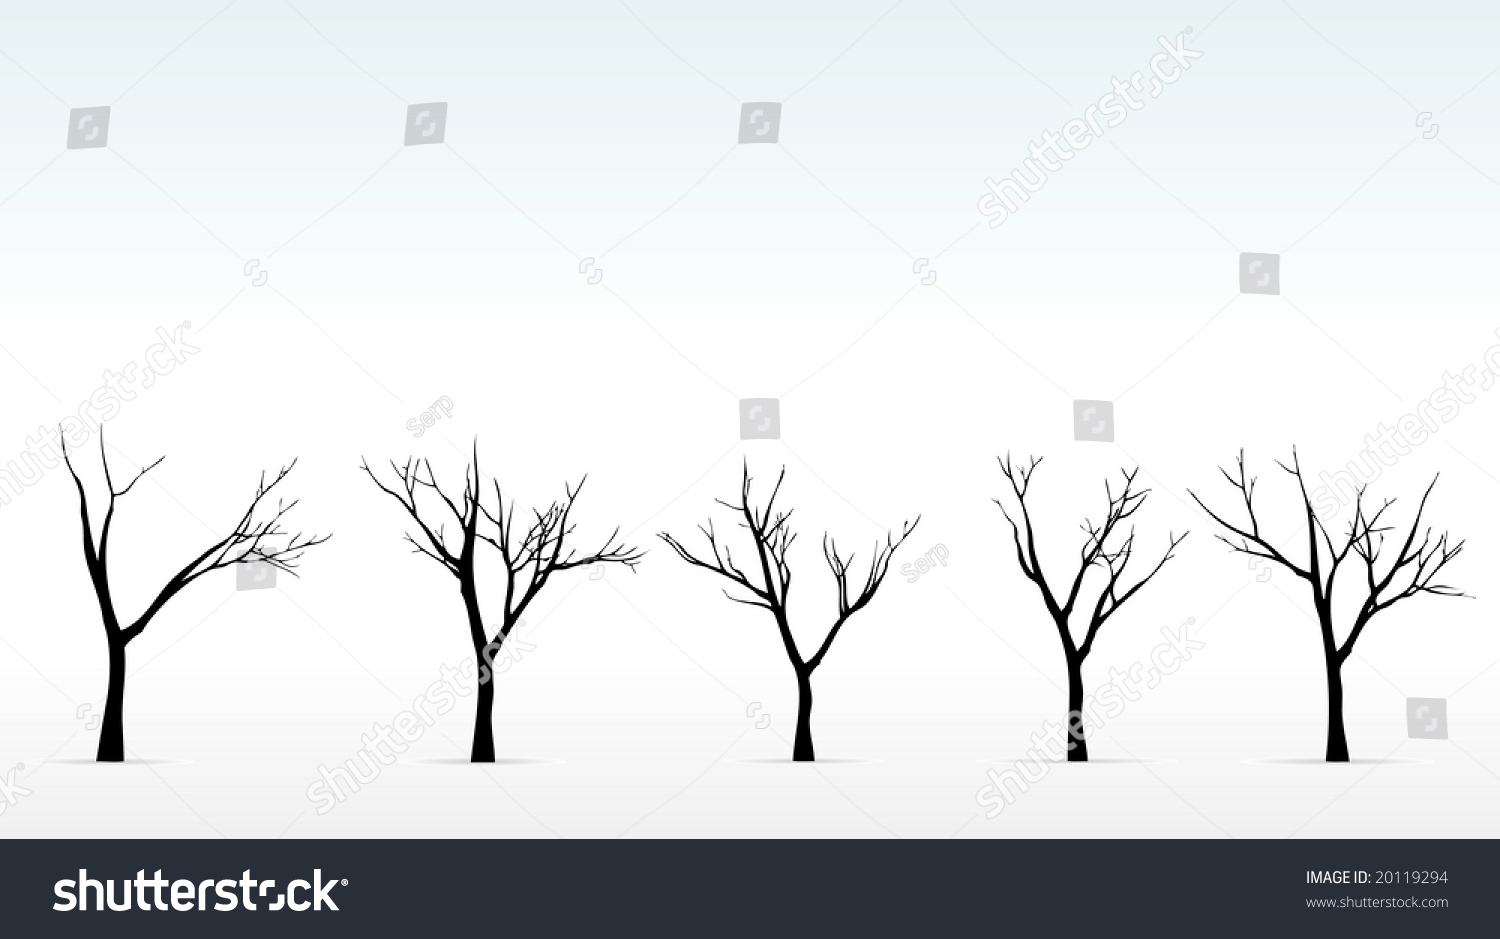 winter trees on background foggy outlines stock vector 20119294